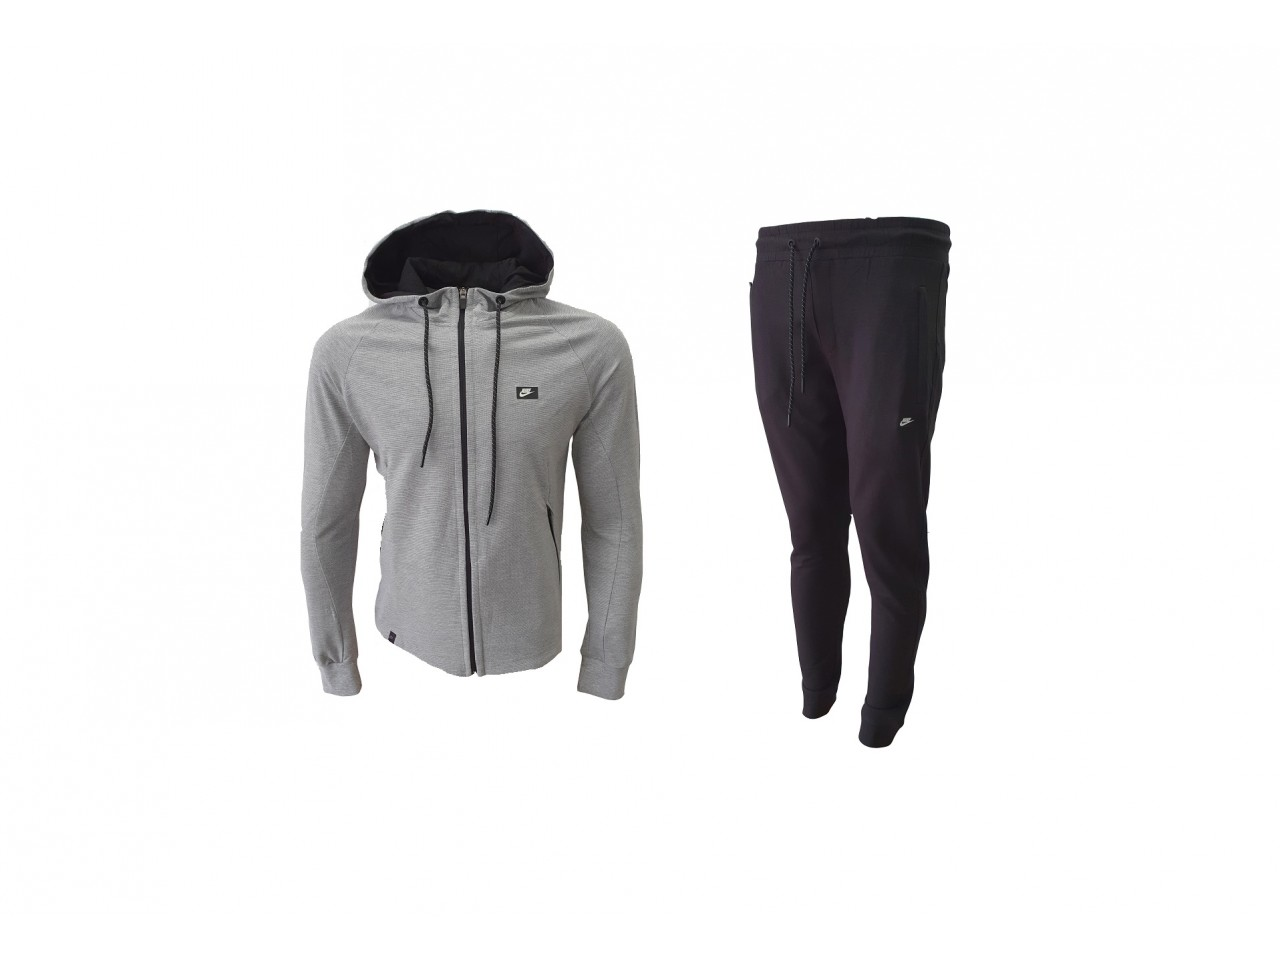 Nike Tracksuit New Model Light Grey & Dark Grey